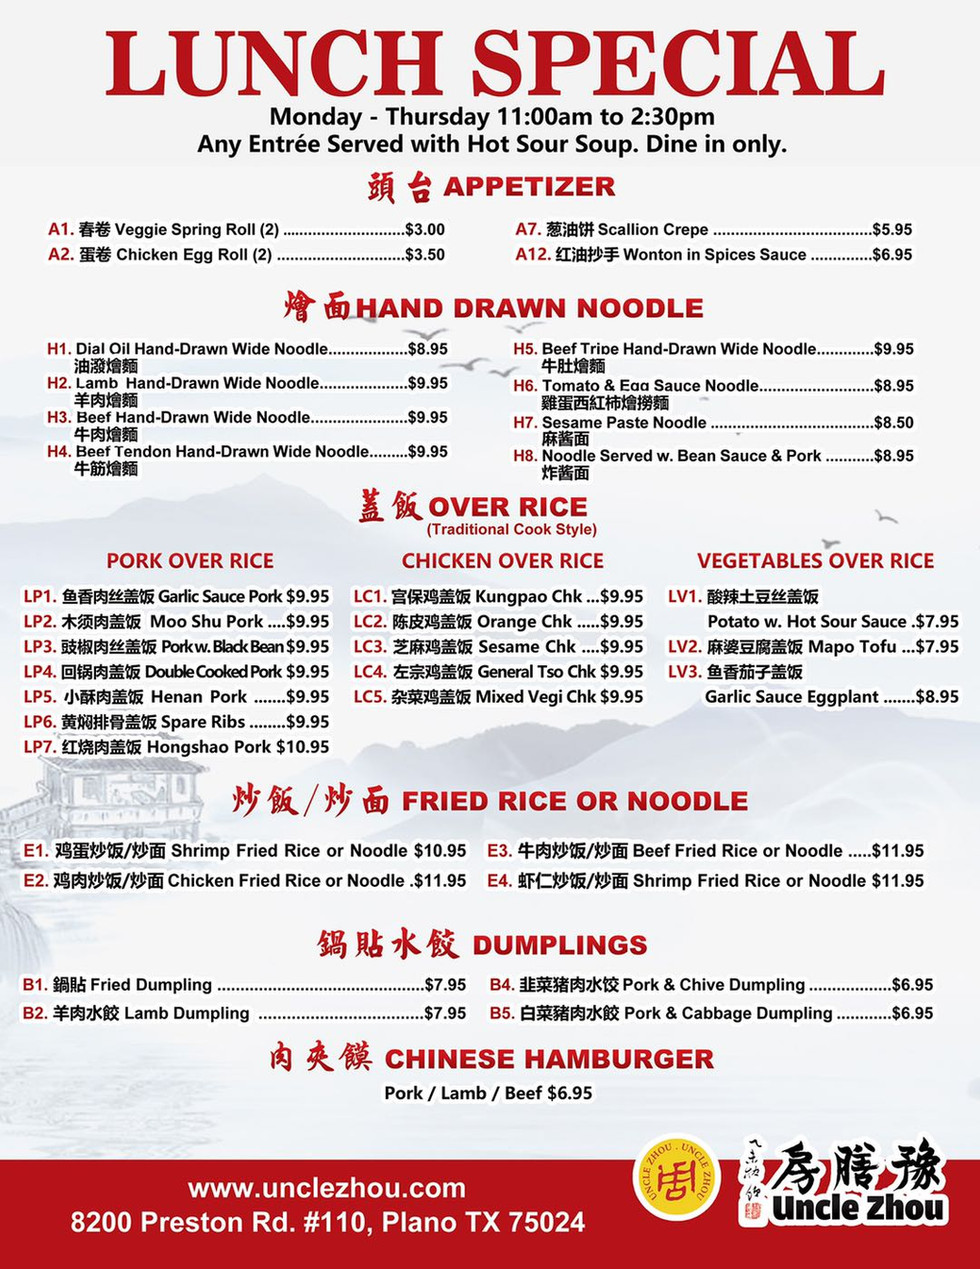 Uncle Zhou Lunch Special Menu